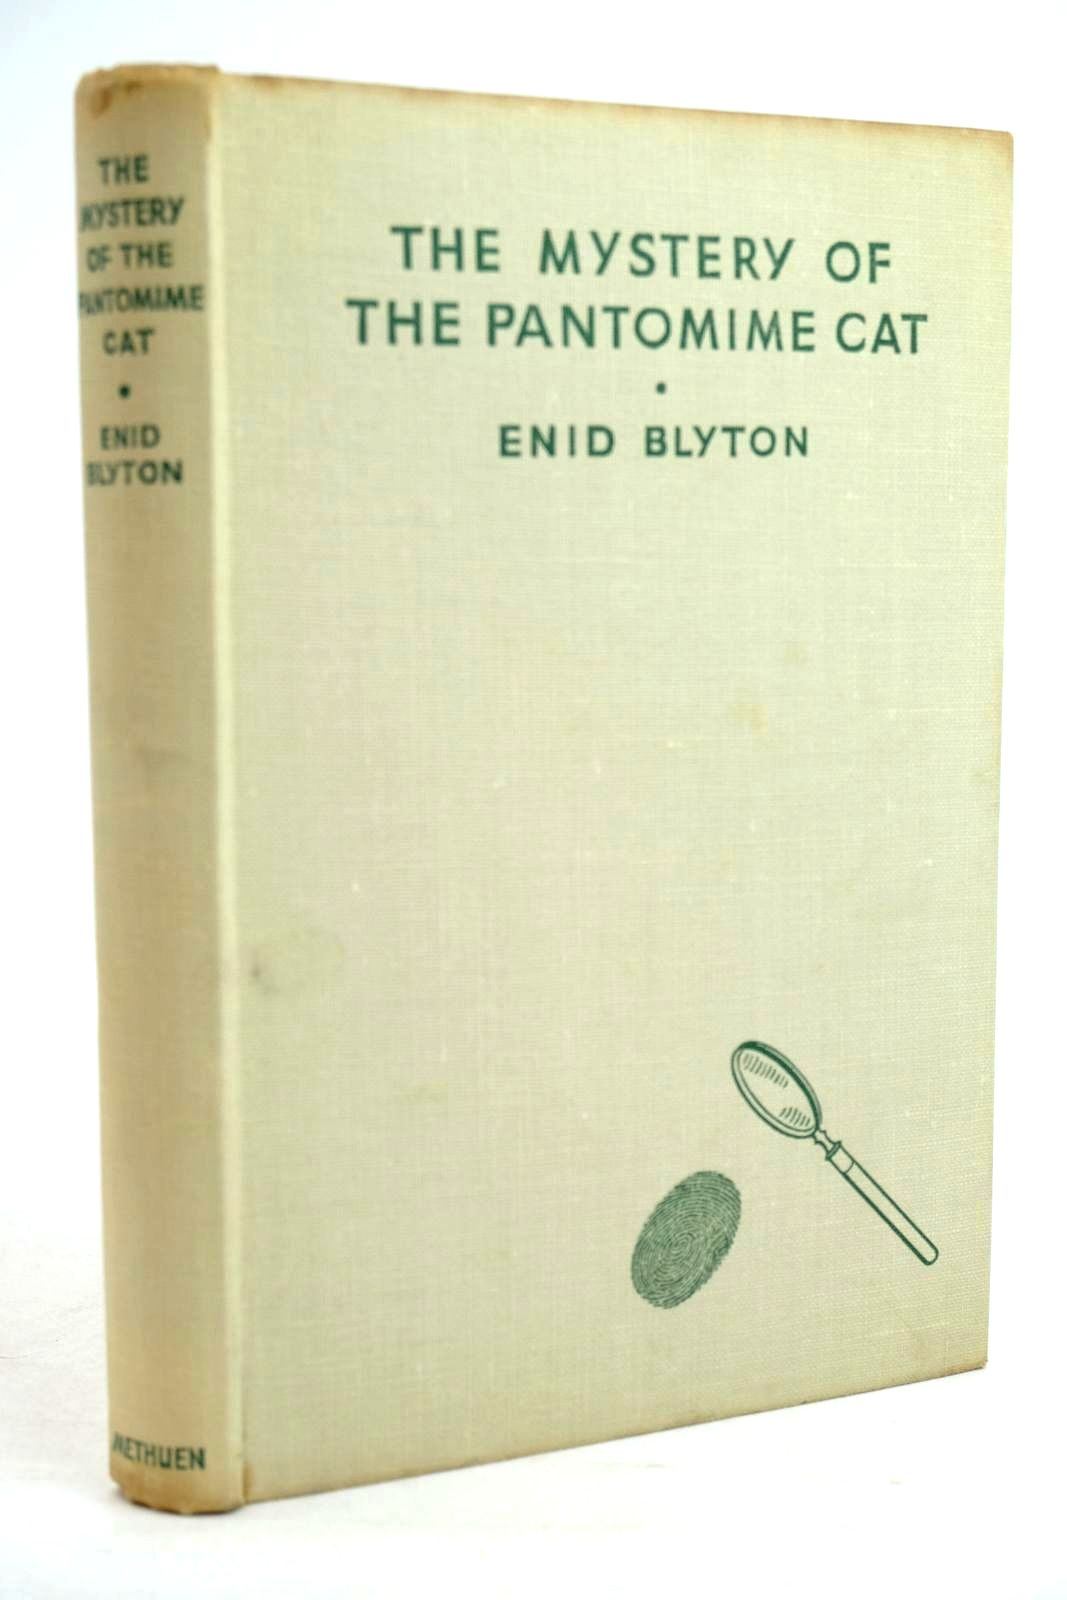 Photo of THE MYSTERY OF THE PANTOMIME CAT written by Blyton, Enid illustrated by Abbey, J. published by Methuen & Co. Ltd. (STOCK CODE: 1320314)  for sale by Stella & Rose's Books